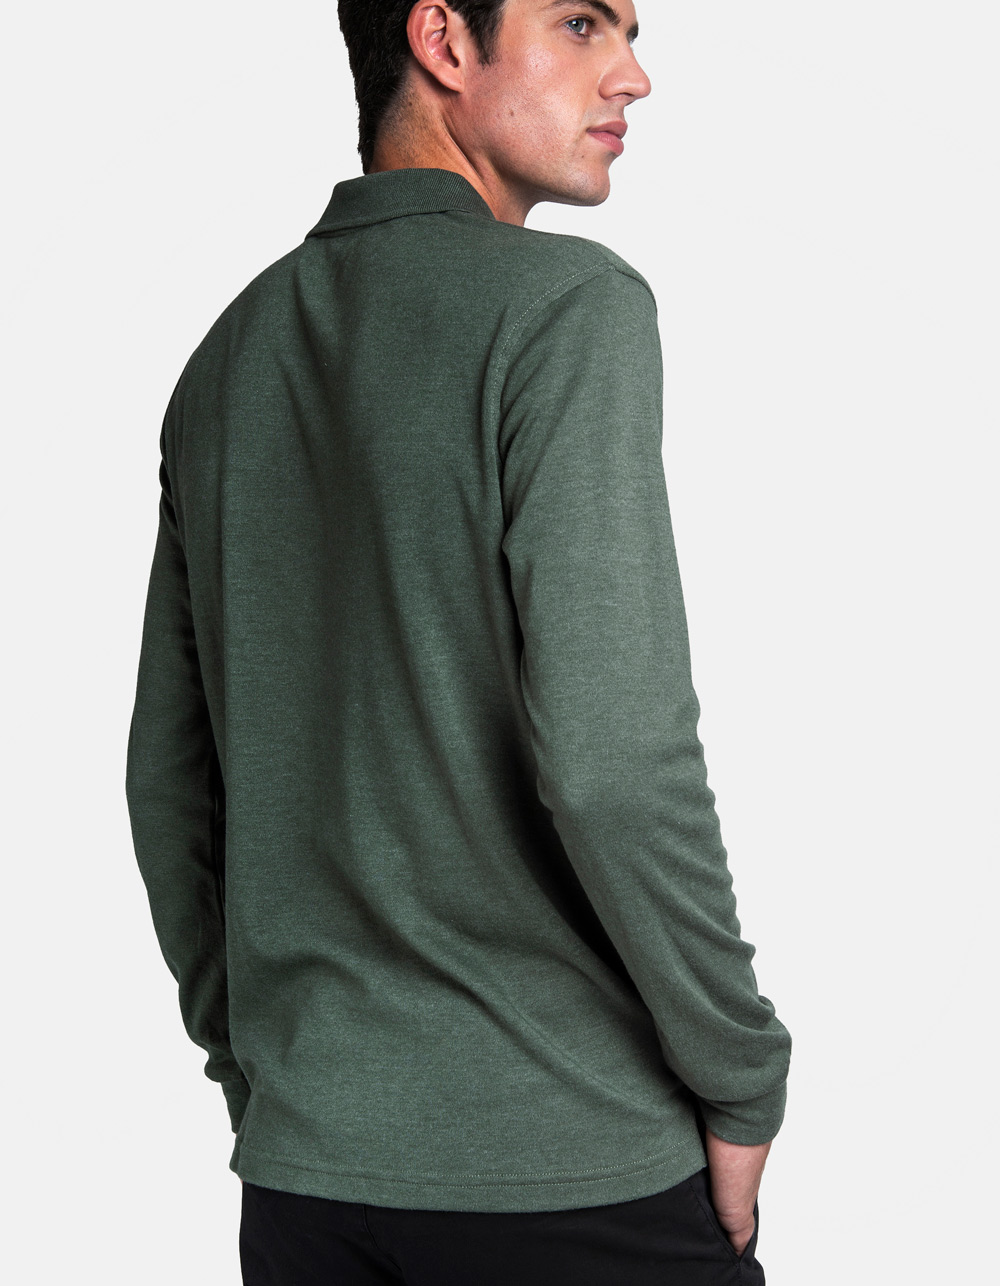 Green washed polo shirt - Backside